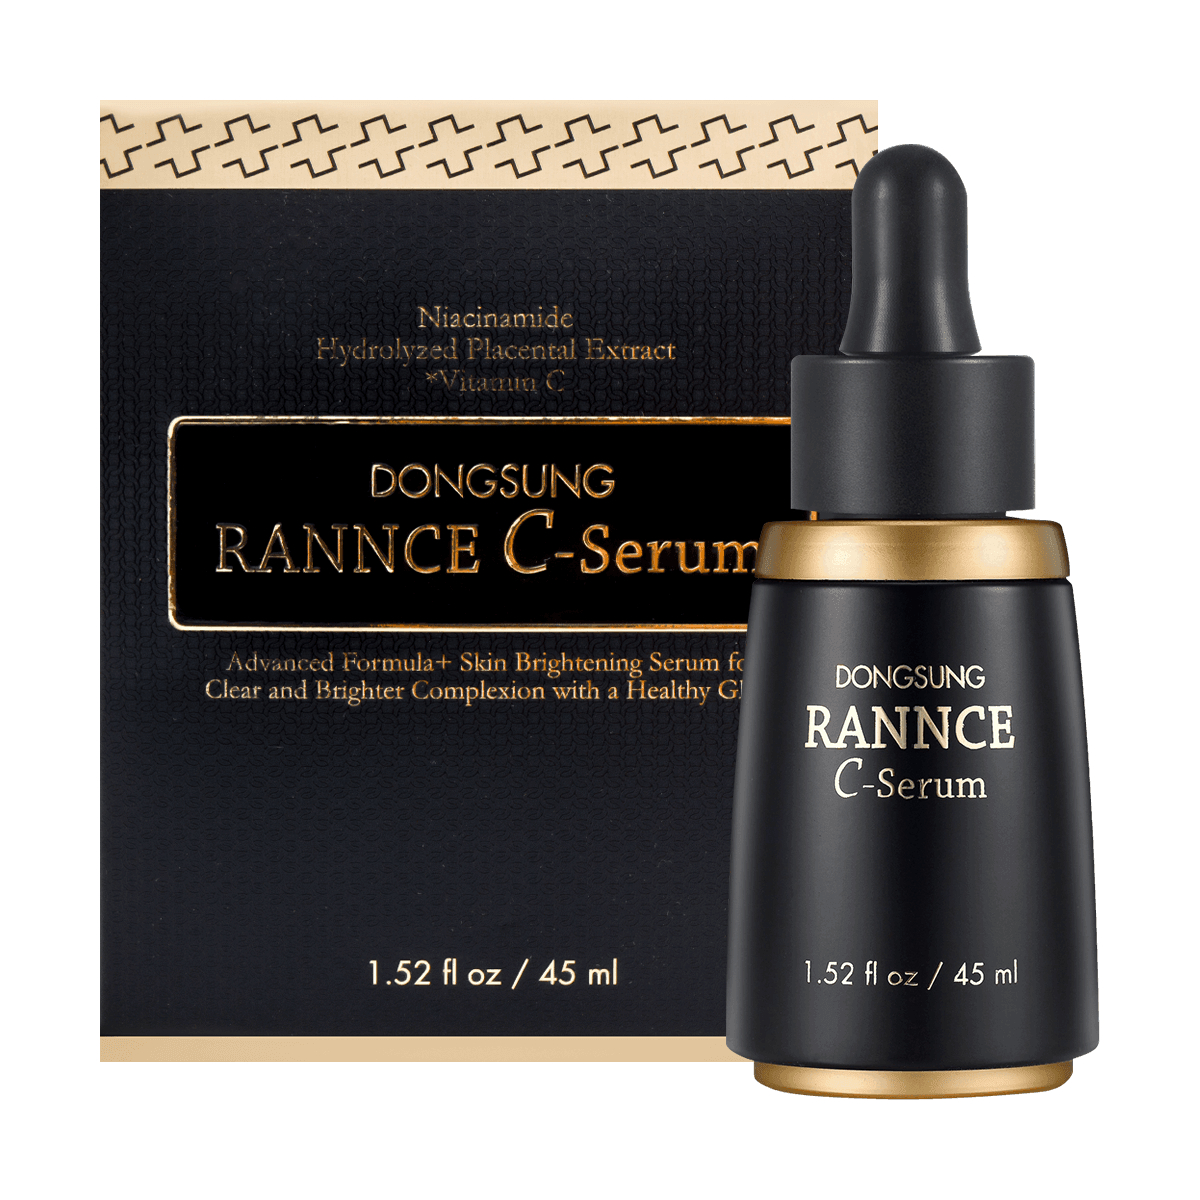 Yamibuy.com:Customer reviews:DONGSUNG Rannce C-Serum 45ml